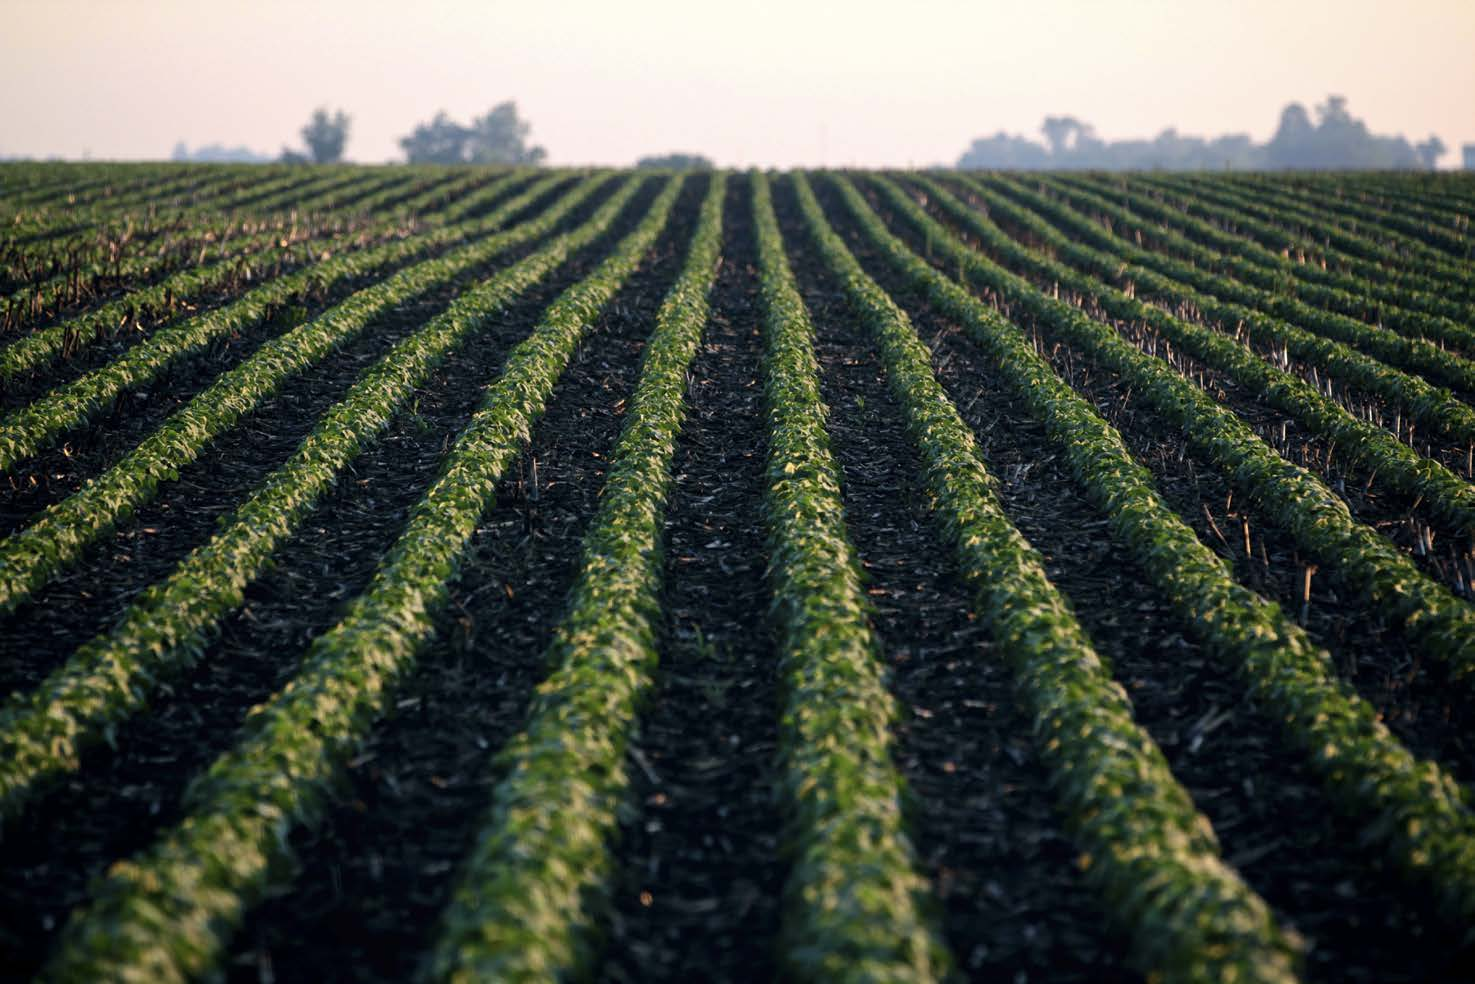 p01 soybeans